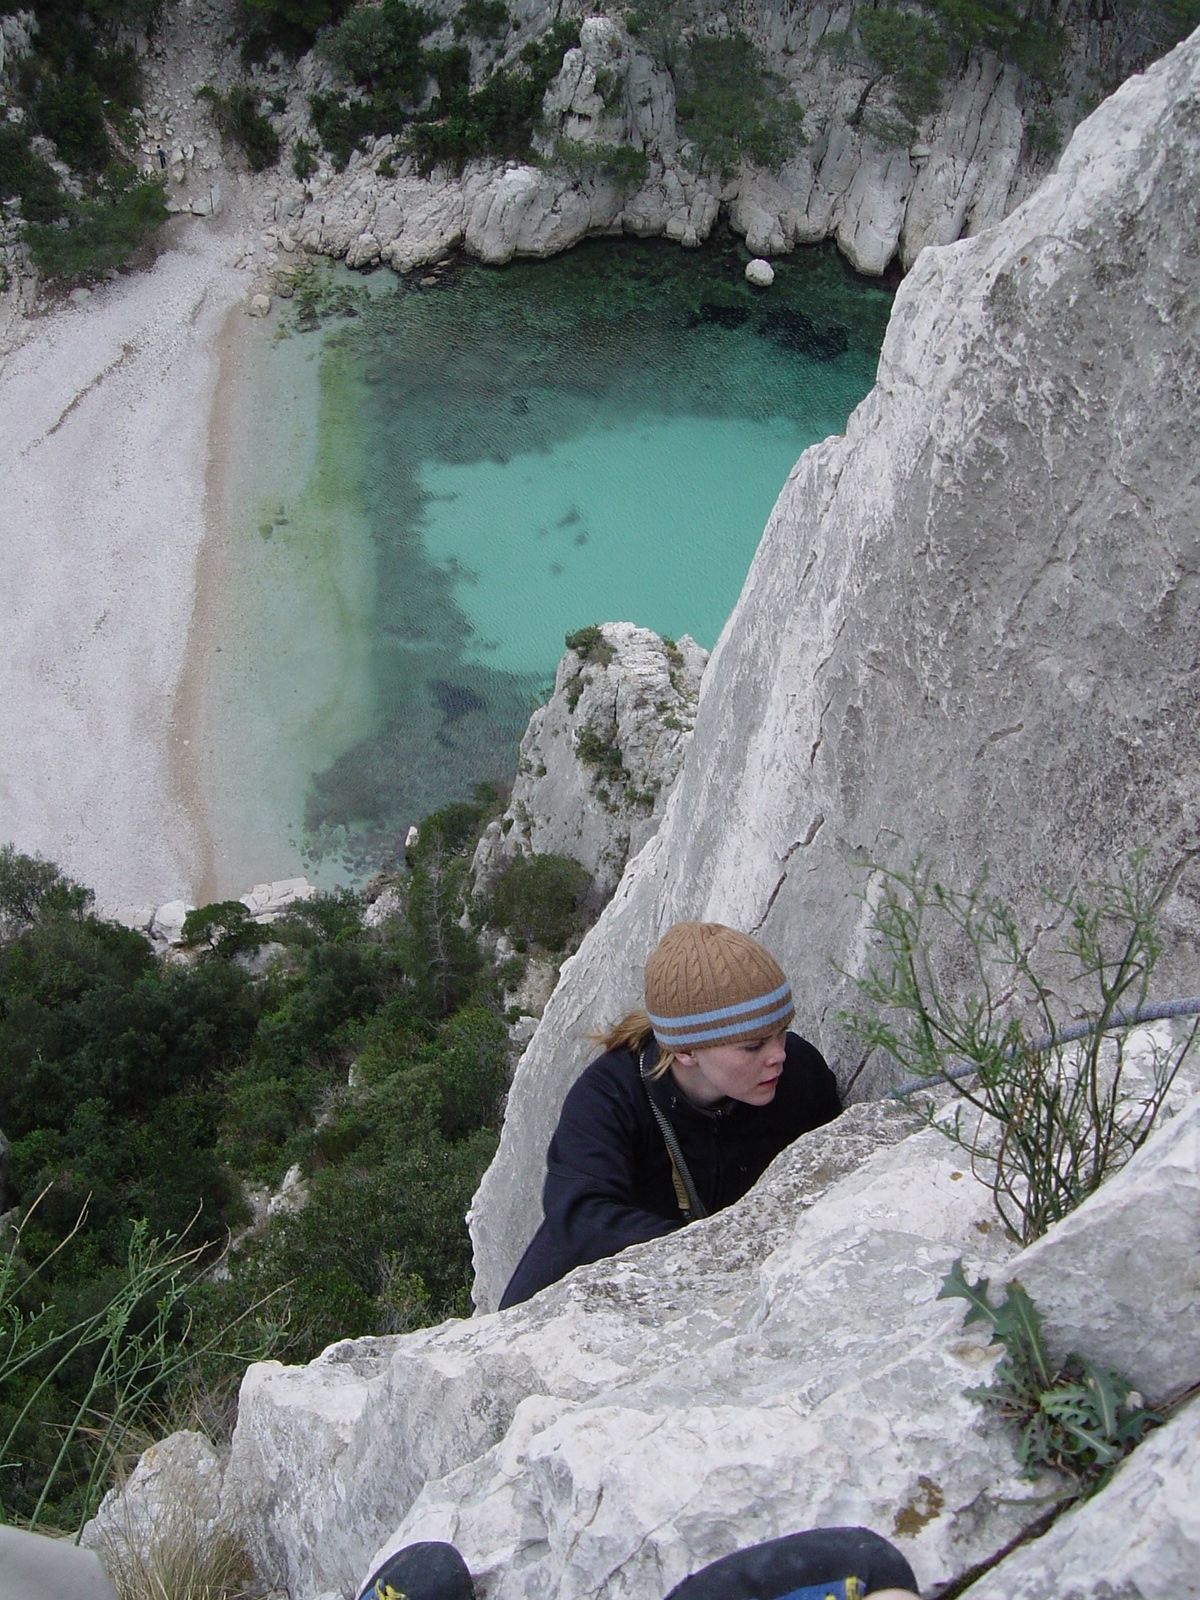 On my first multi-pitch climb back in 2004. Les Calanques, France. Photo: Chad VanderHam